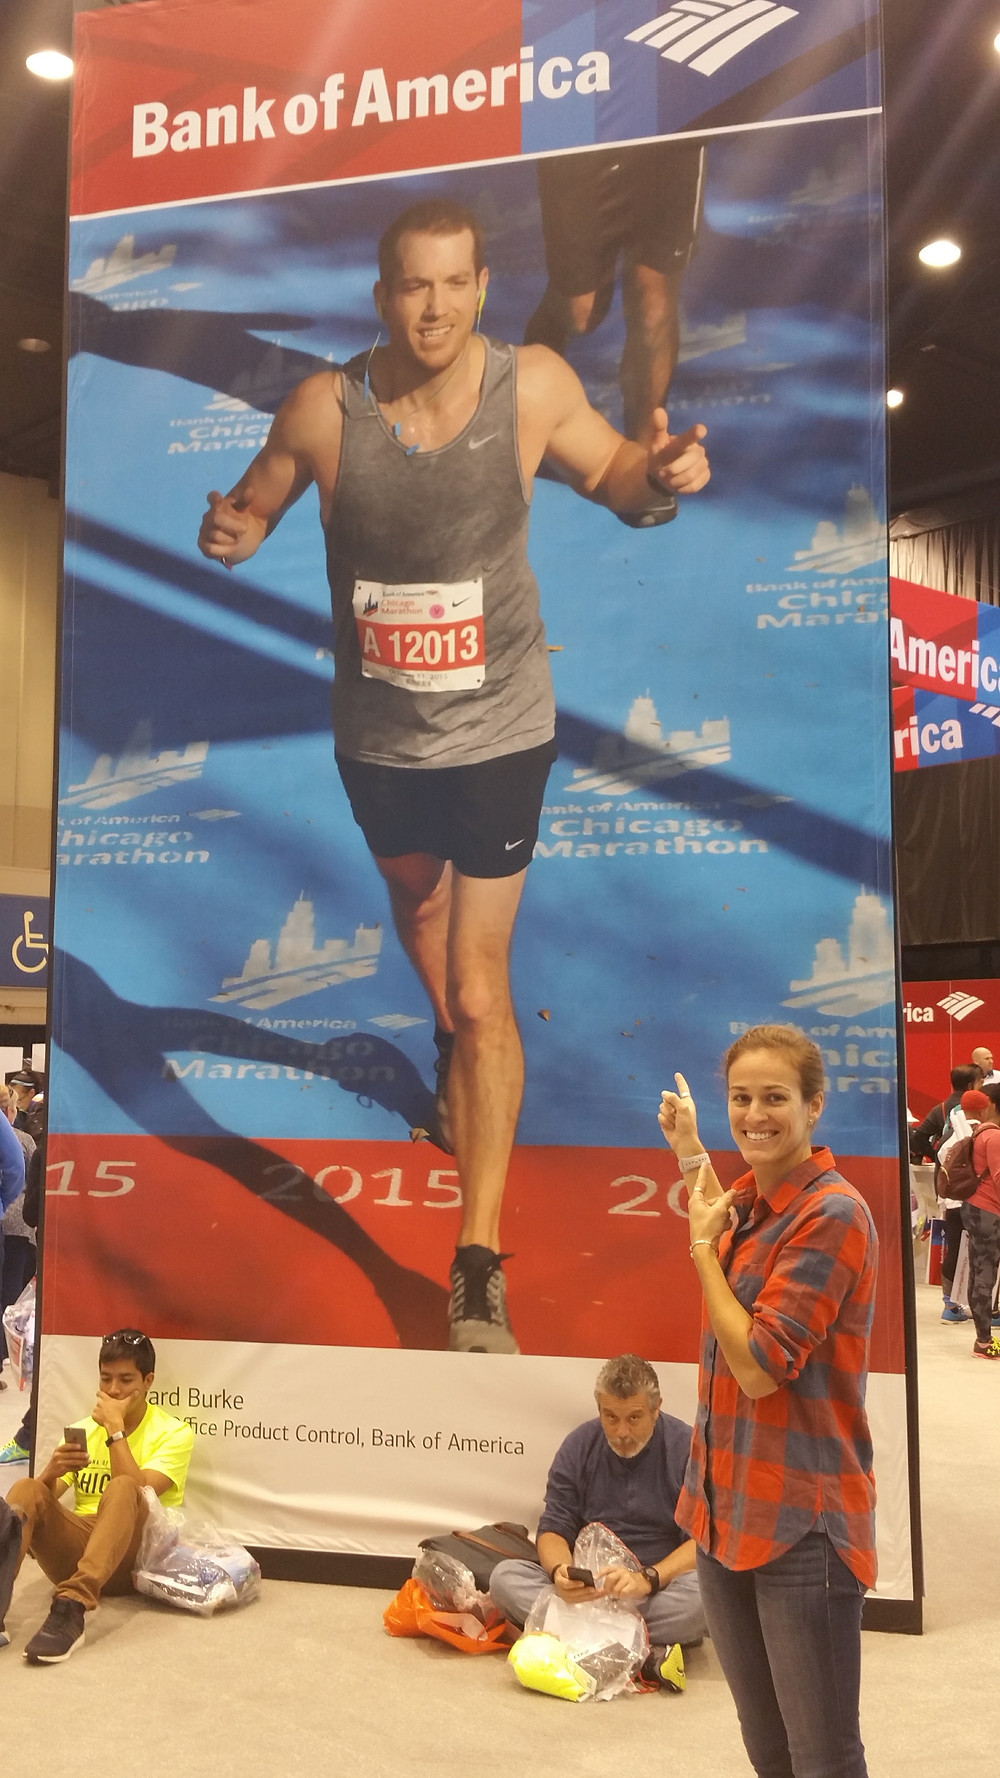 EJ at the Chicago Marathon in